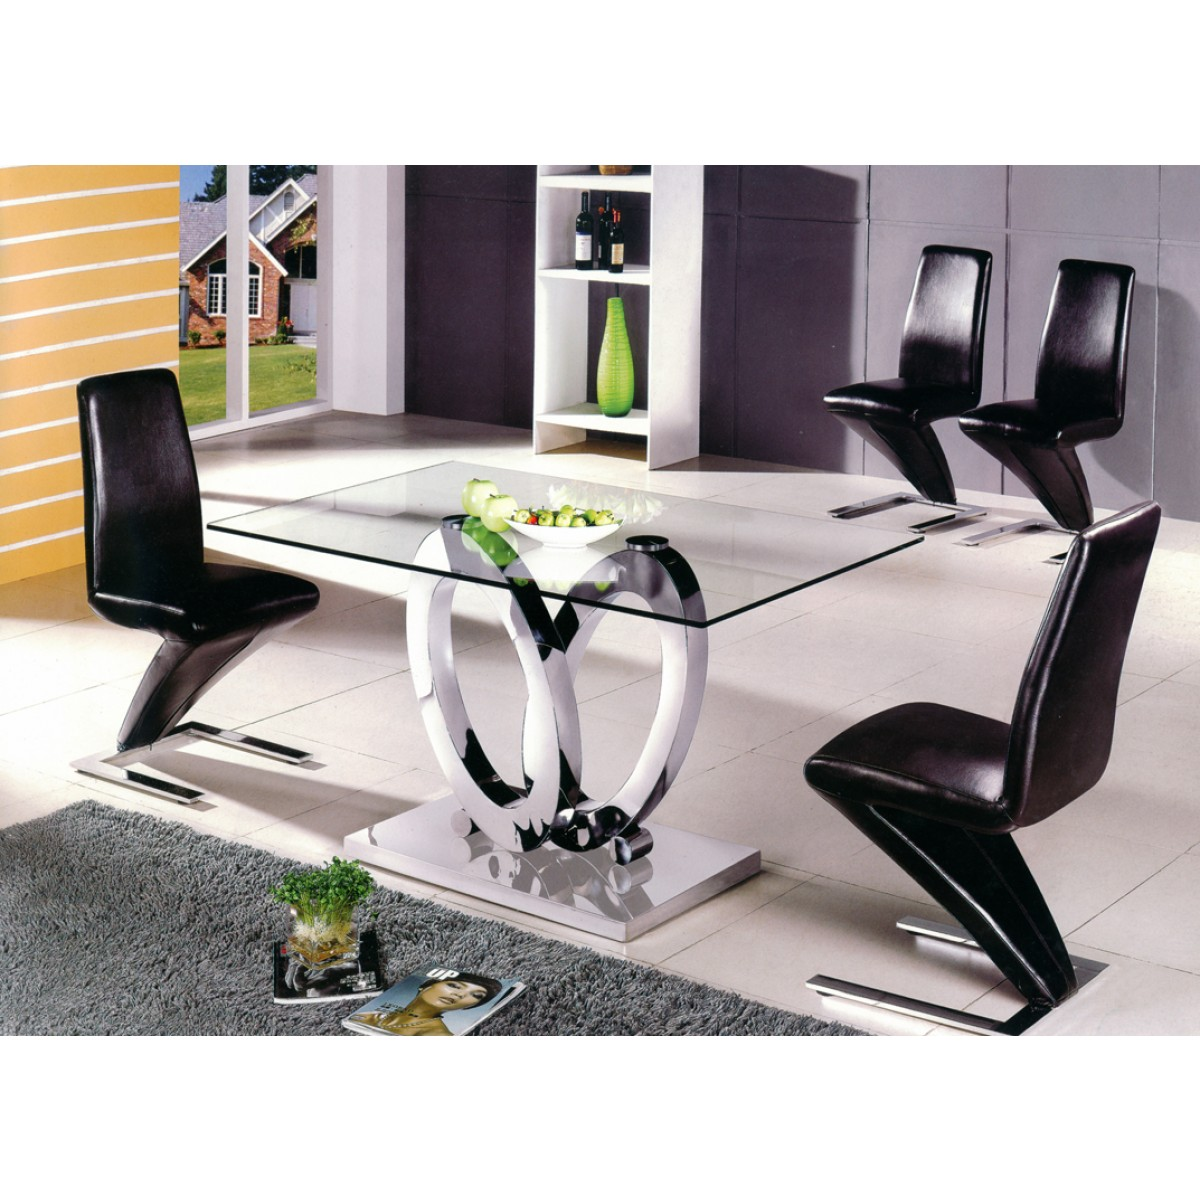 Table manger design ellipse taille au choix tables for Table de salle a manger